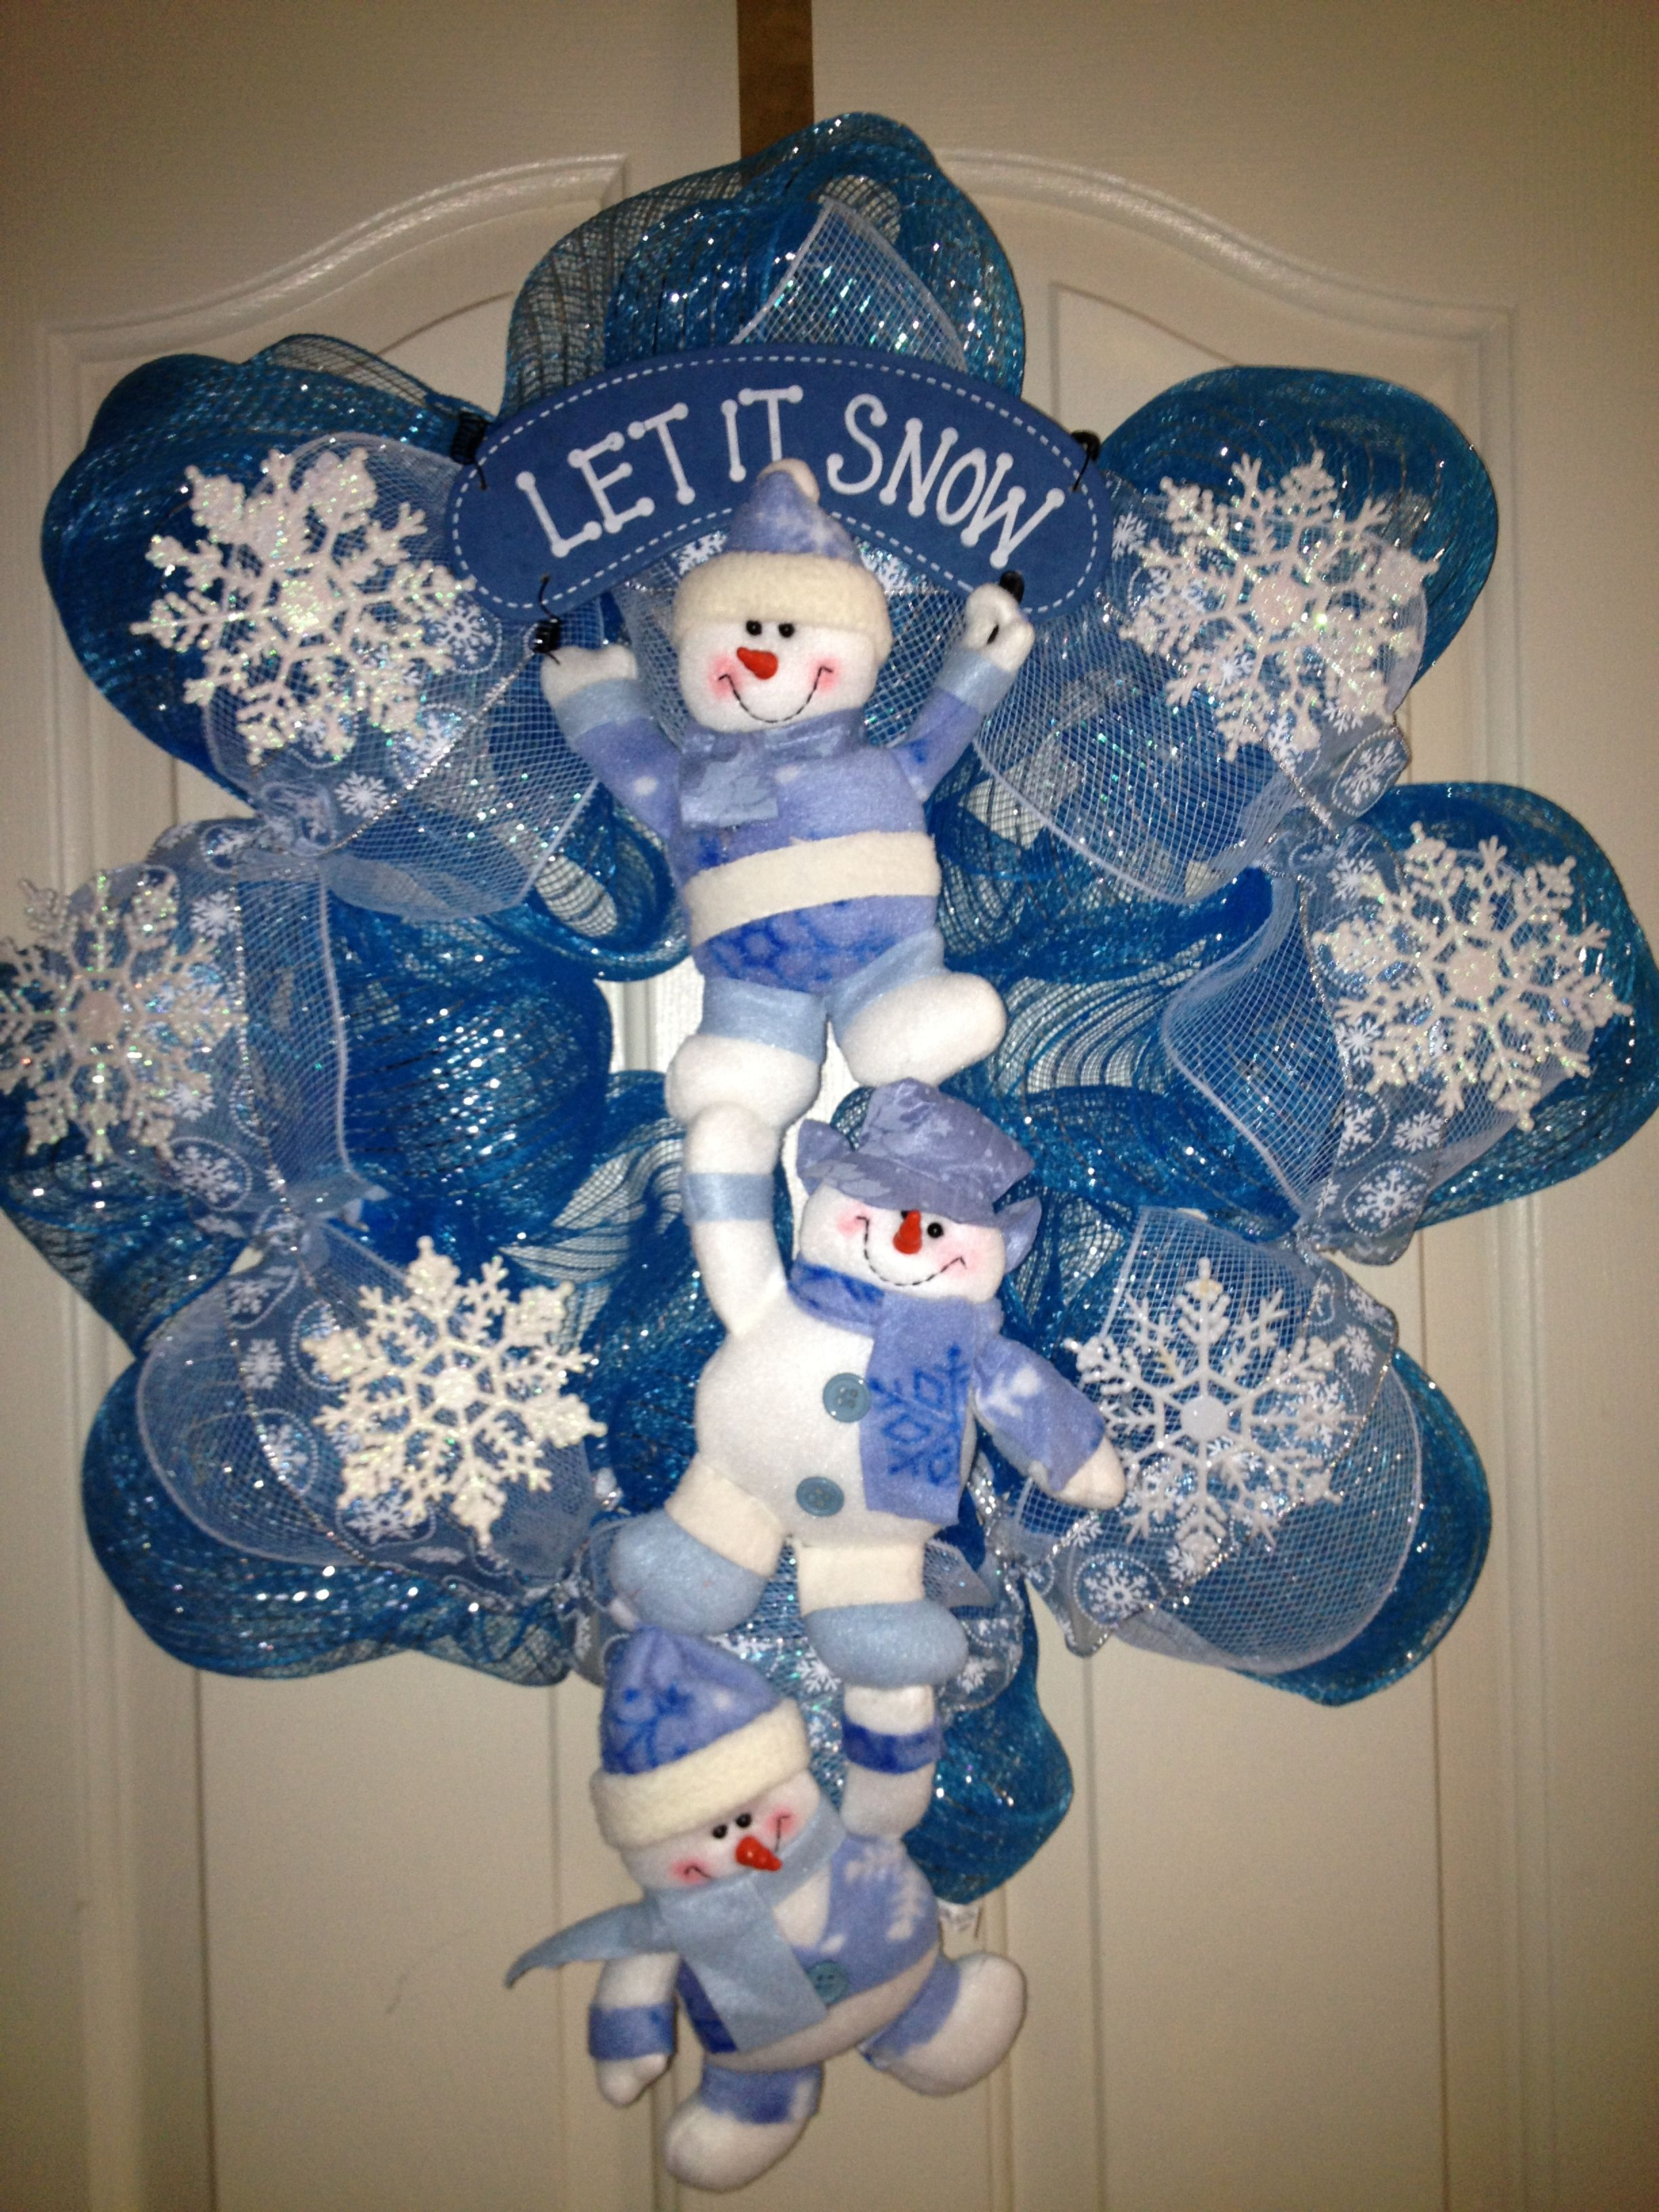 wreath crafts ideas let it snow wreath winter ideas wreaths 3272